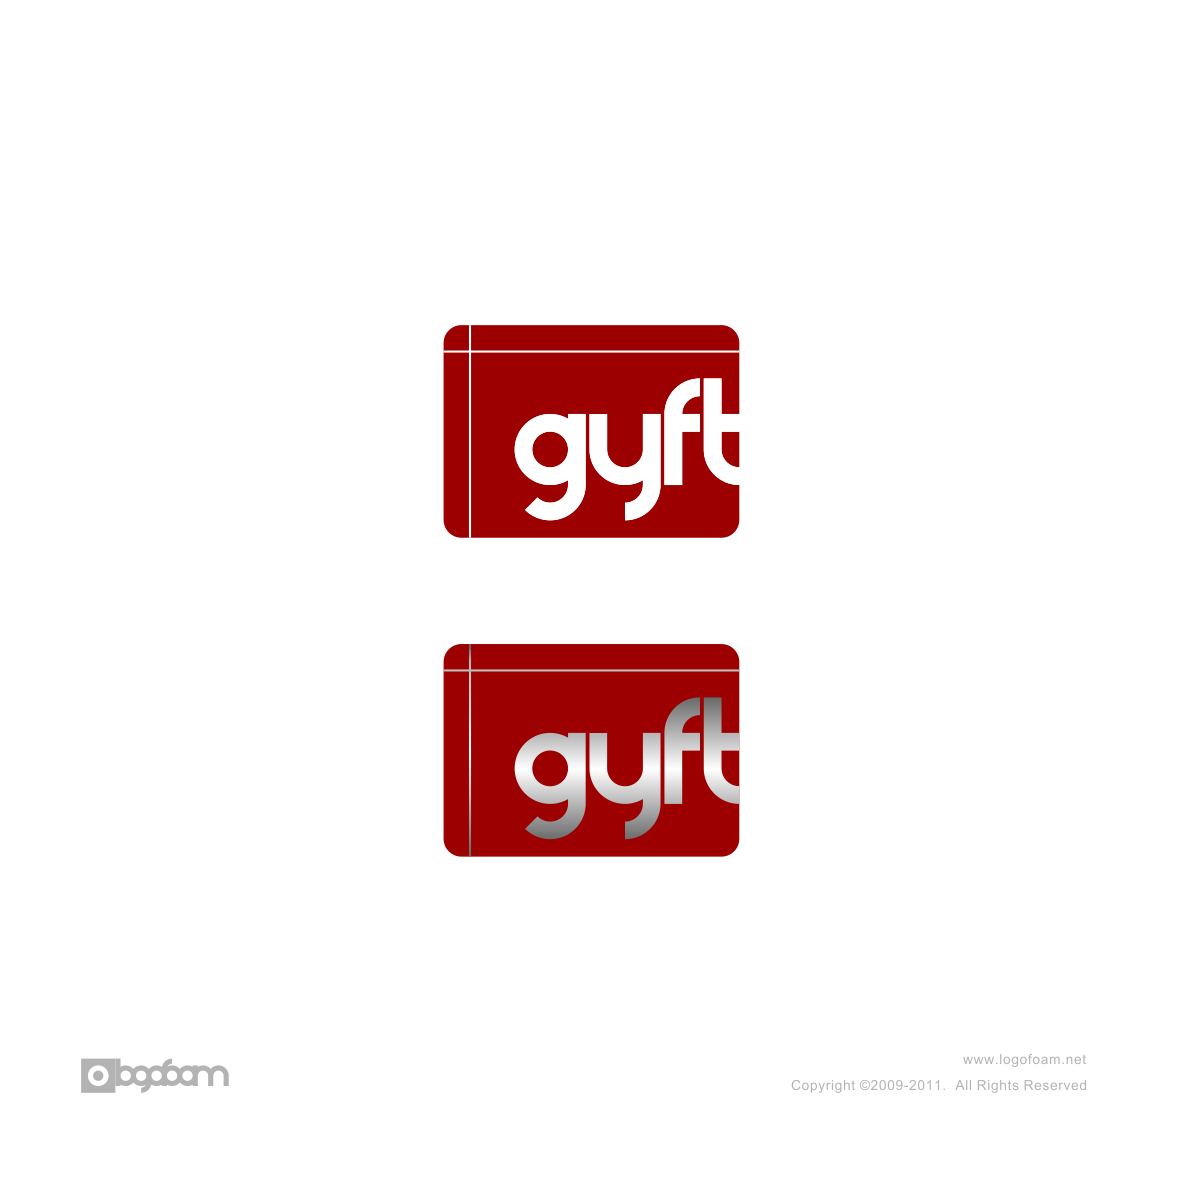 New logo wanted for hot start-up gyft.com